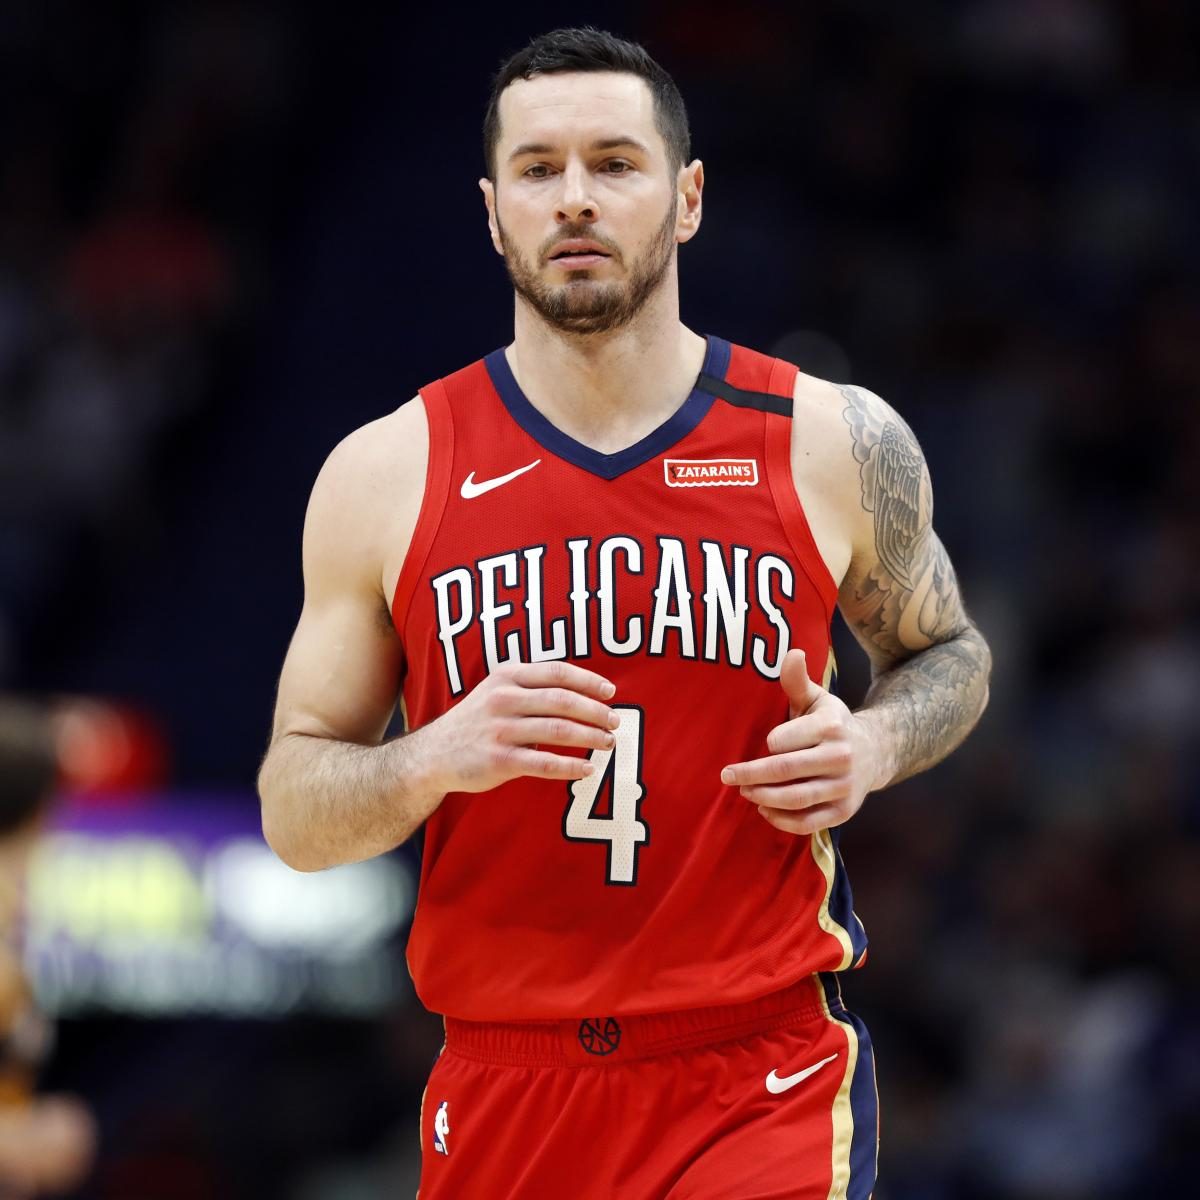 Pelicans' JJ Redick Says His Goal Is to Play 4 More Seasons, Retire at Age 40